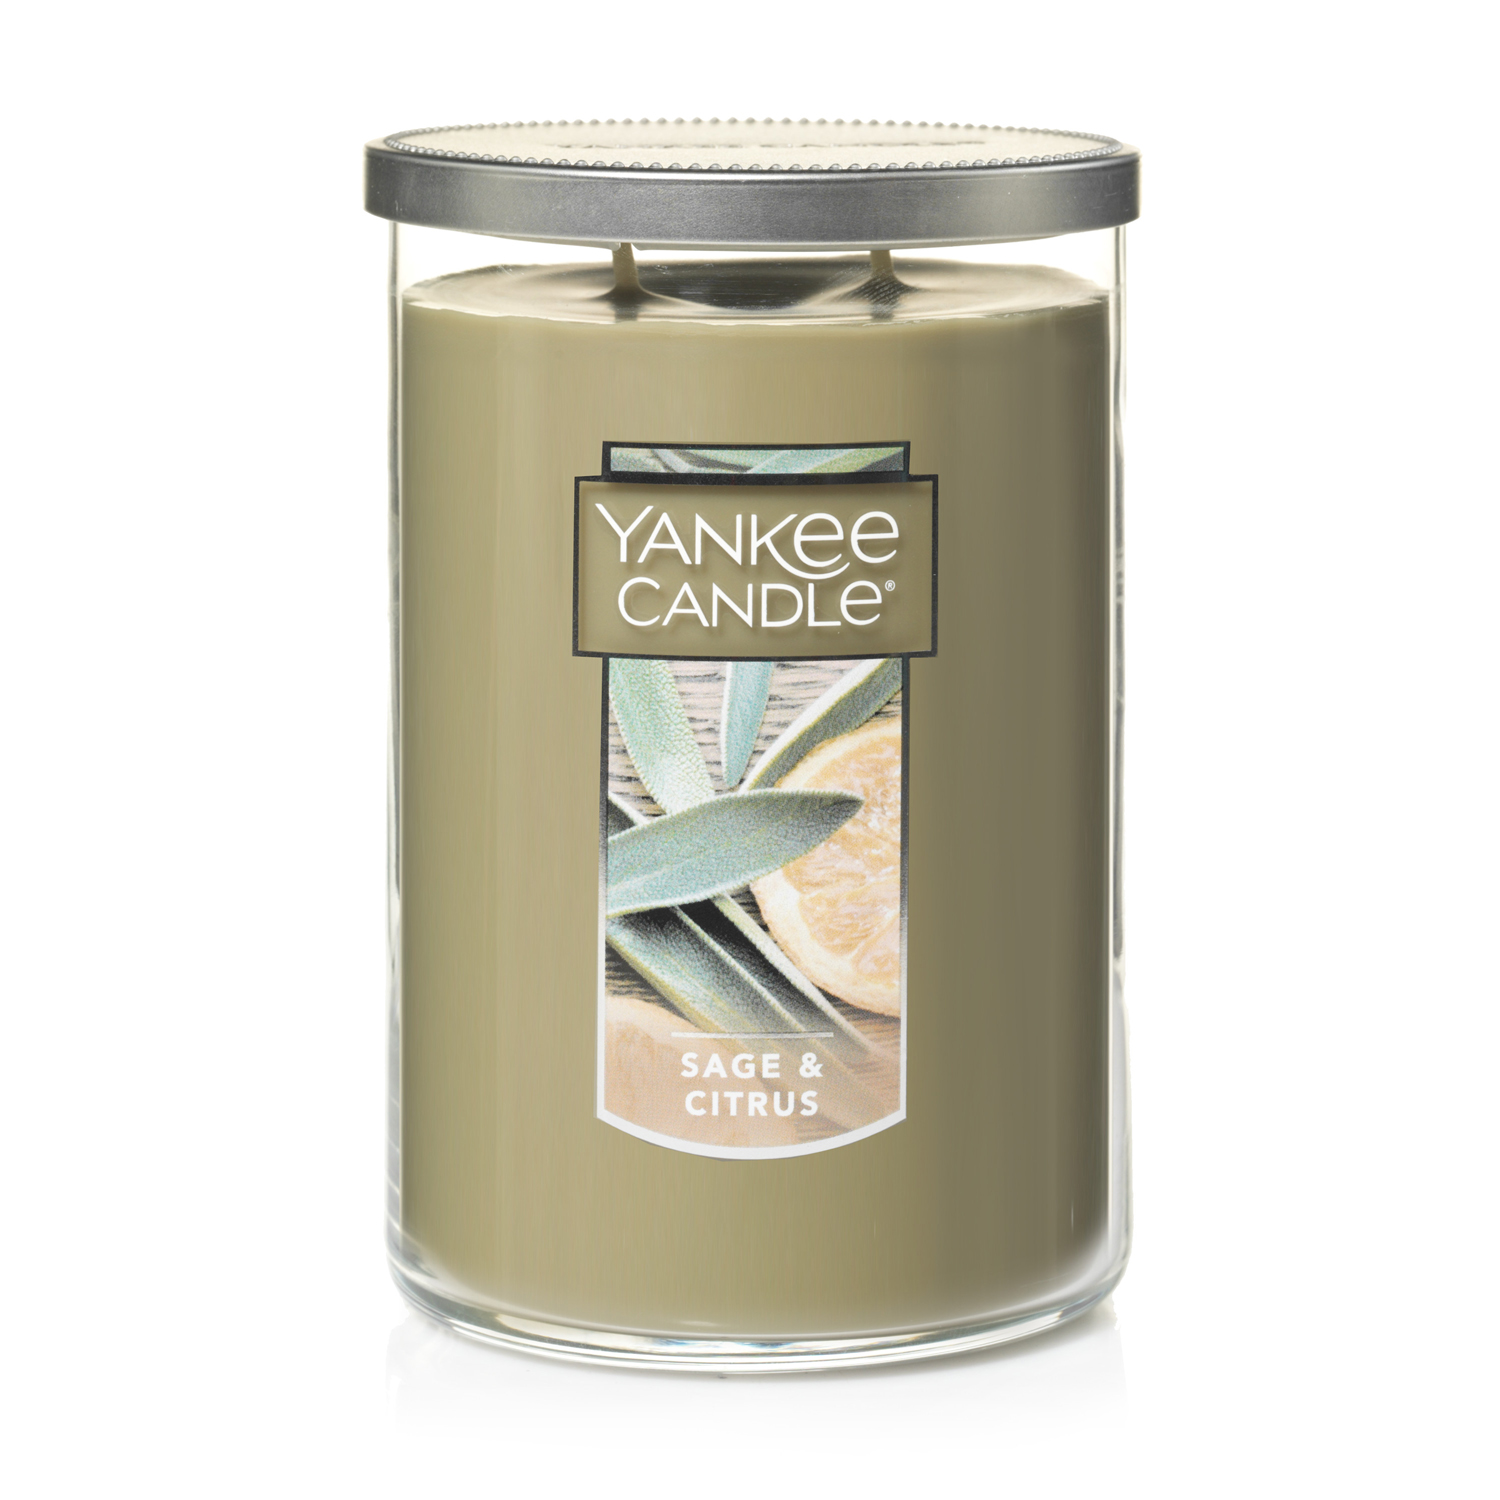 Yankee Candle Large 2-Wick Tumbler Candle, Sage & Citrus